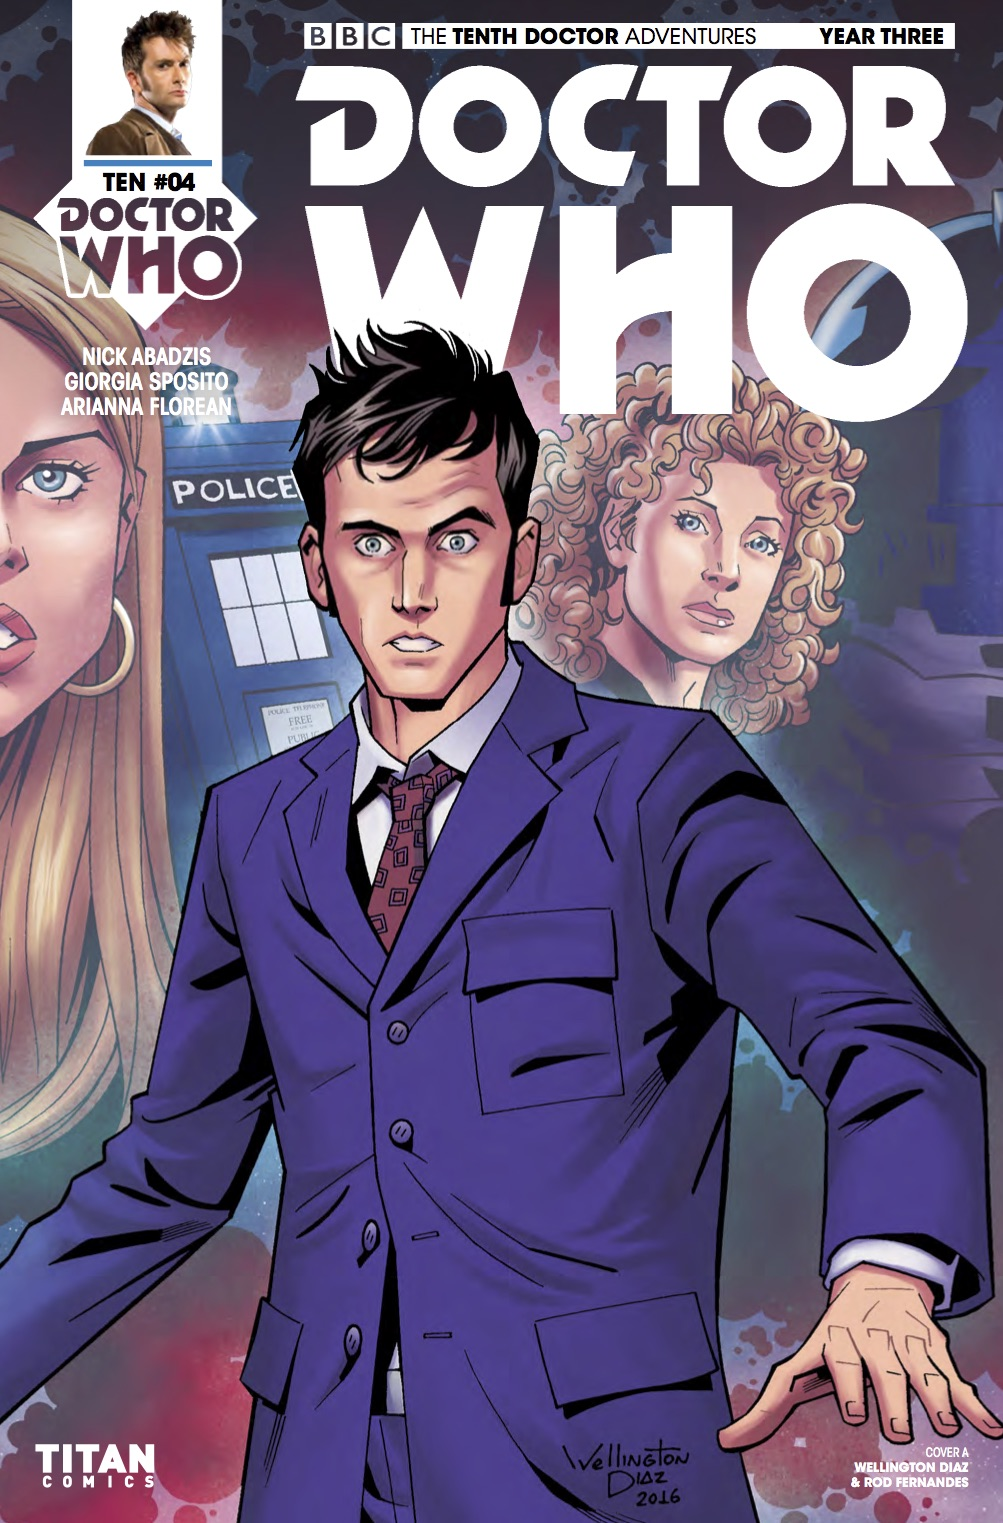 THE TENTH DOCTOR YEAR THREE #4 Cover A (Credit: Titan)